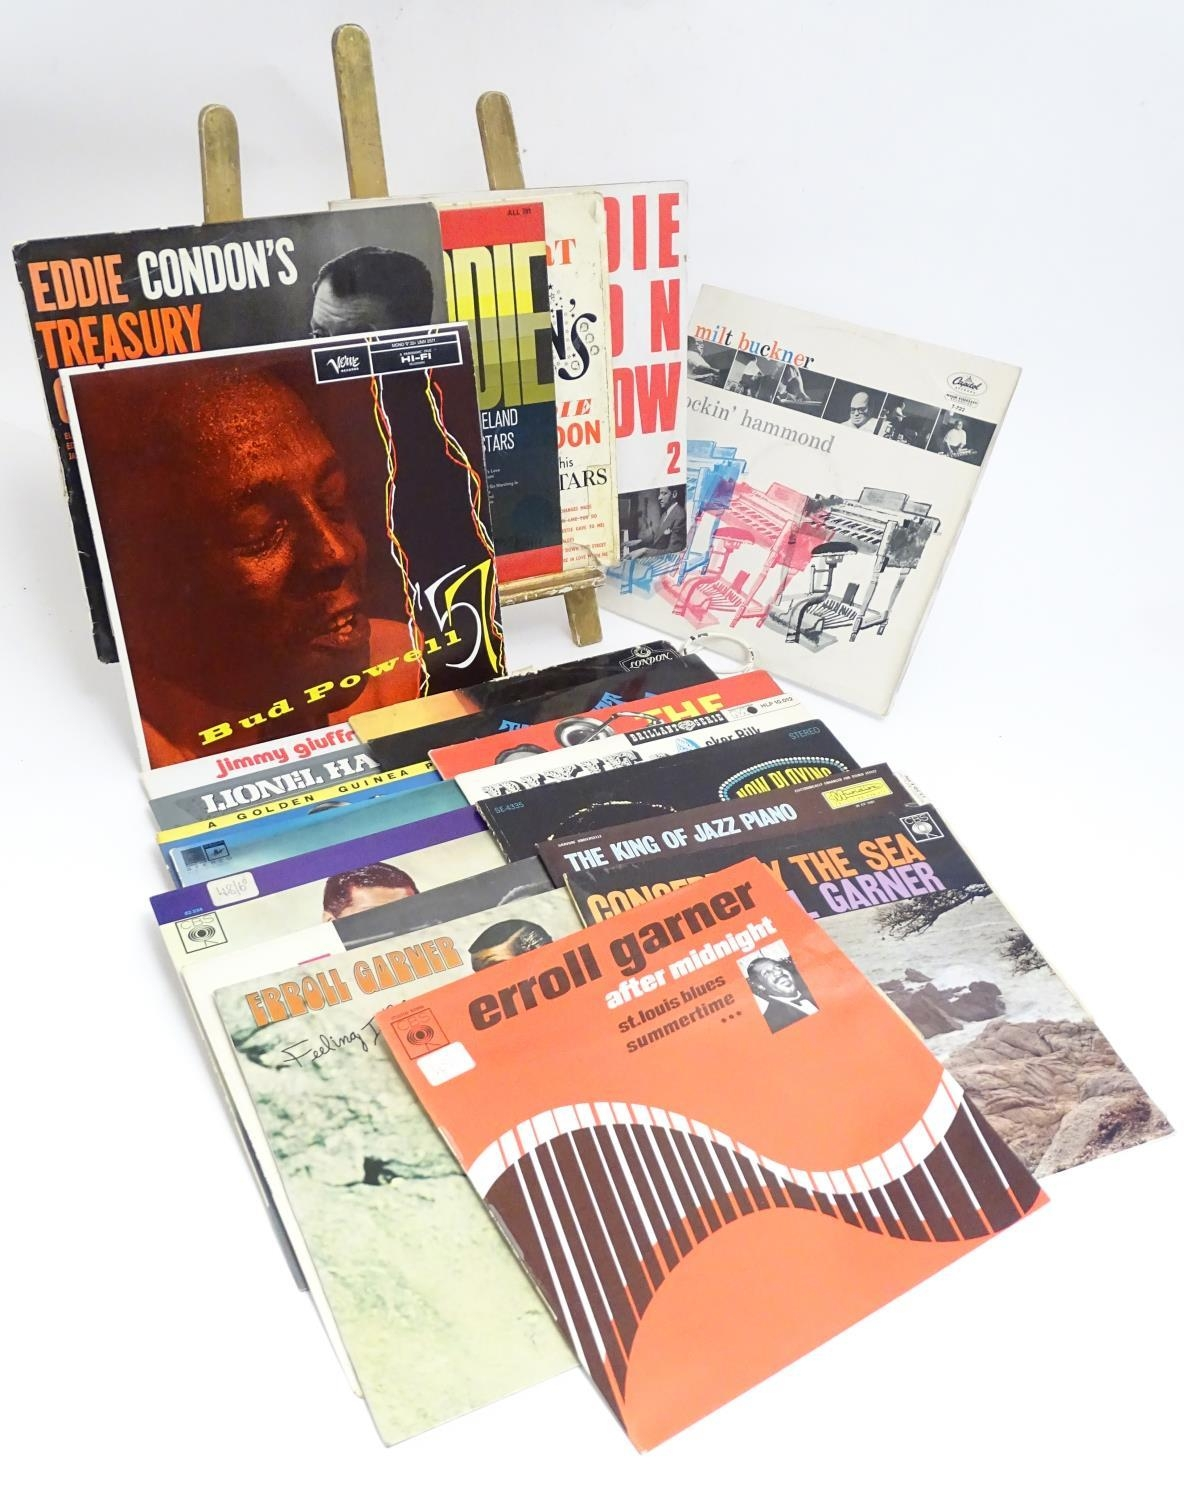 A collection of 20thC 33 rpm Vinyl records / LPs, - Jazz, comprising: The Eddie Condon Floor Show 2, - Image 8 of 19